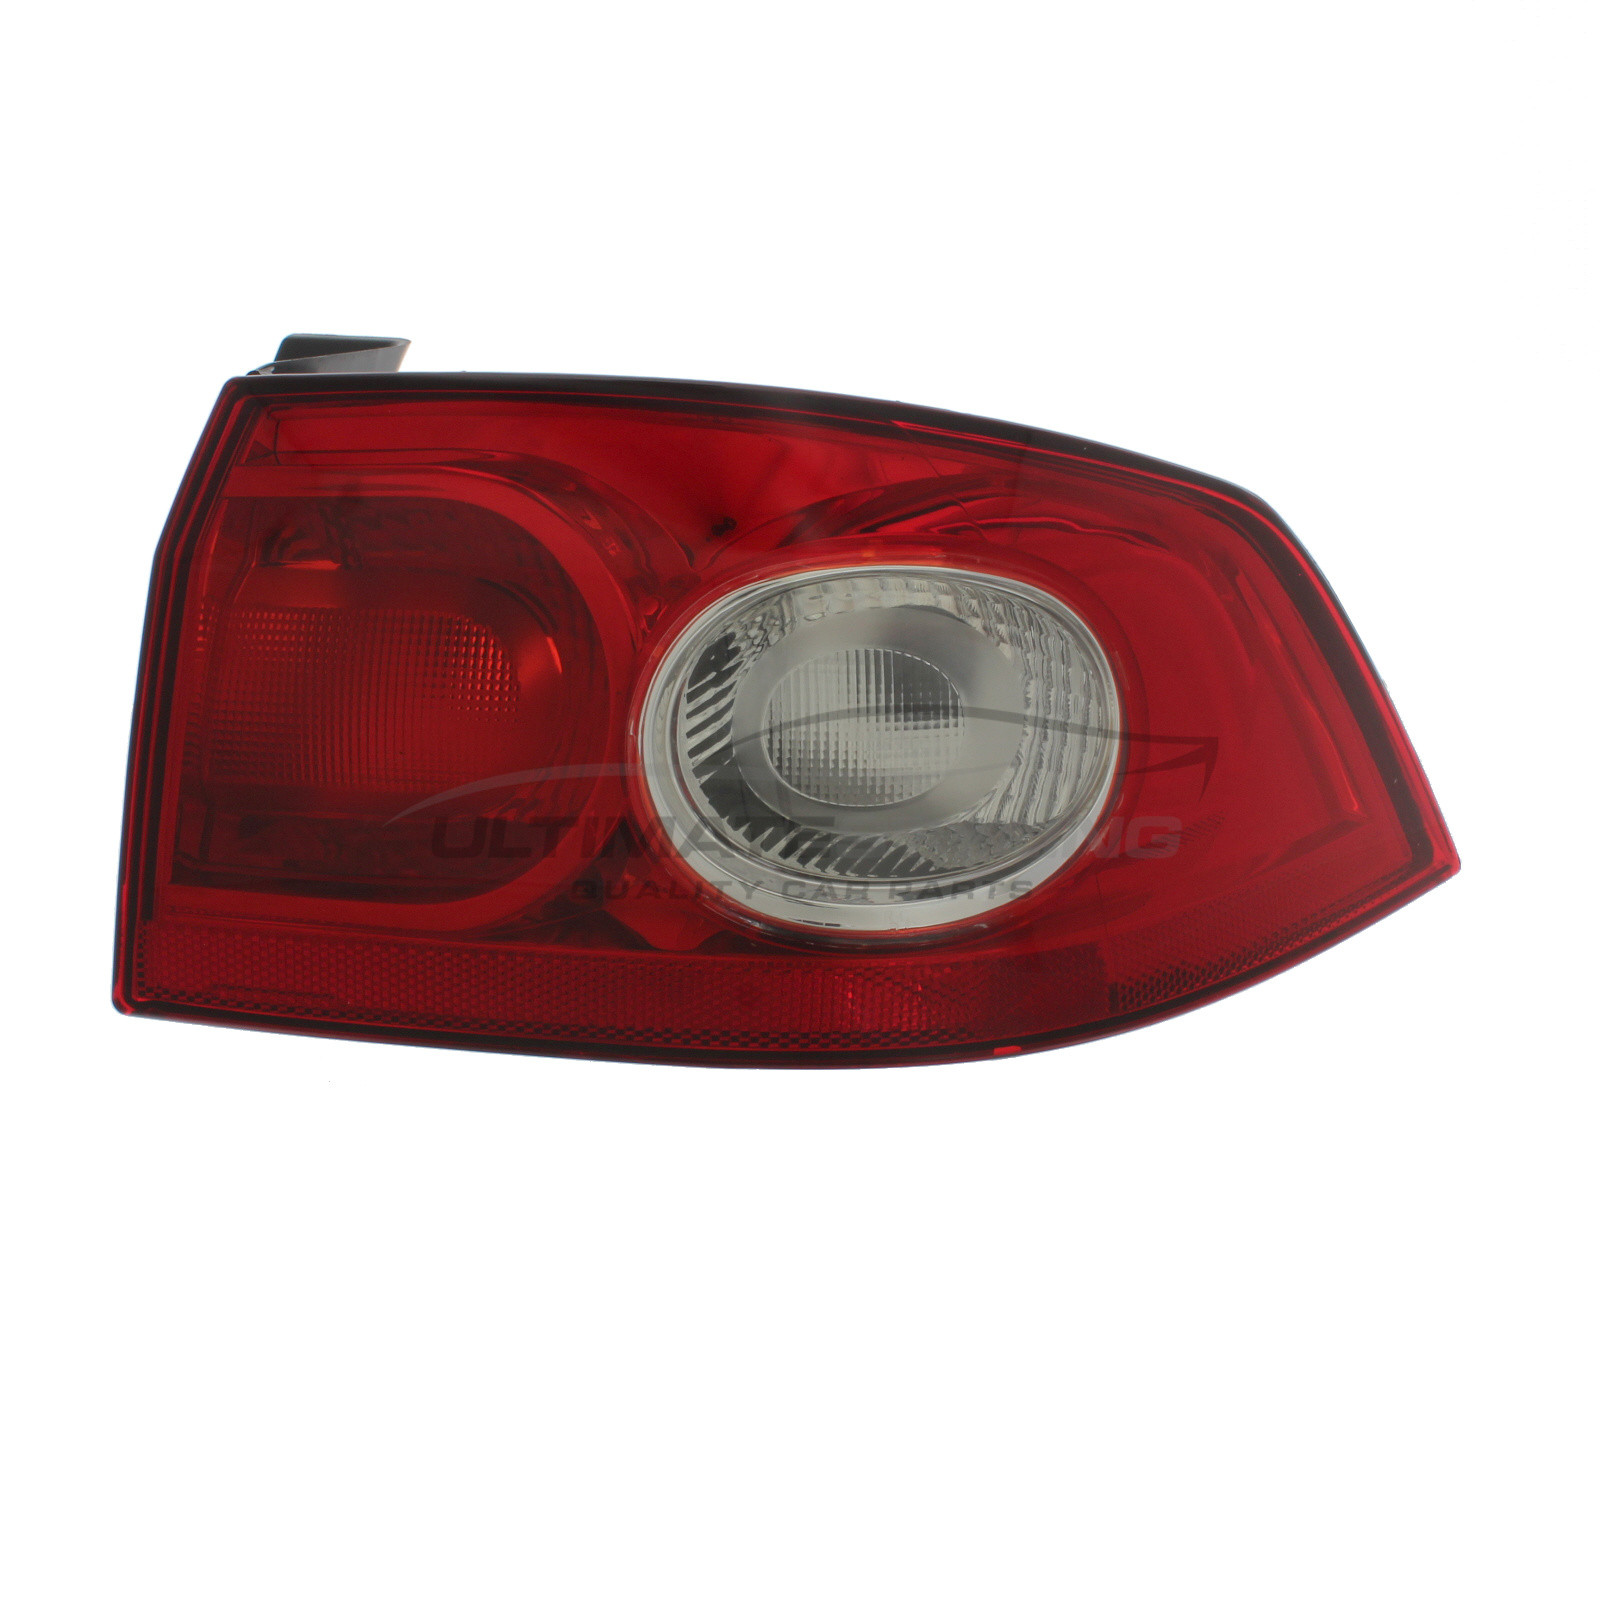 Renault Laguna Rear Light / Tail Light - Drivers Side (RH), Rear Outer (Wing) - Non-LED